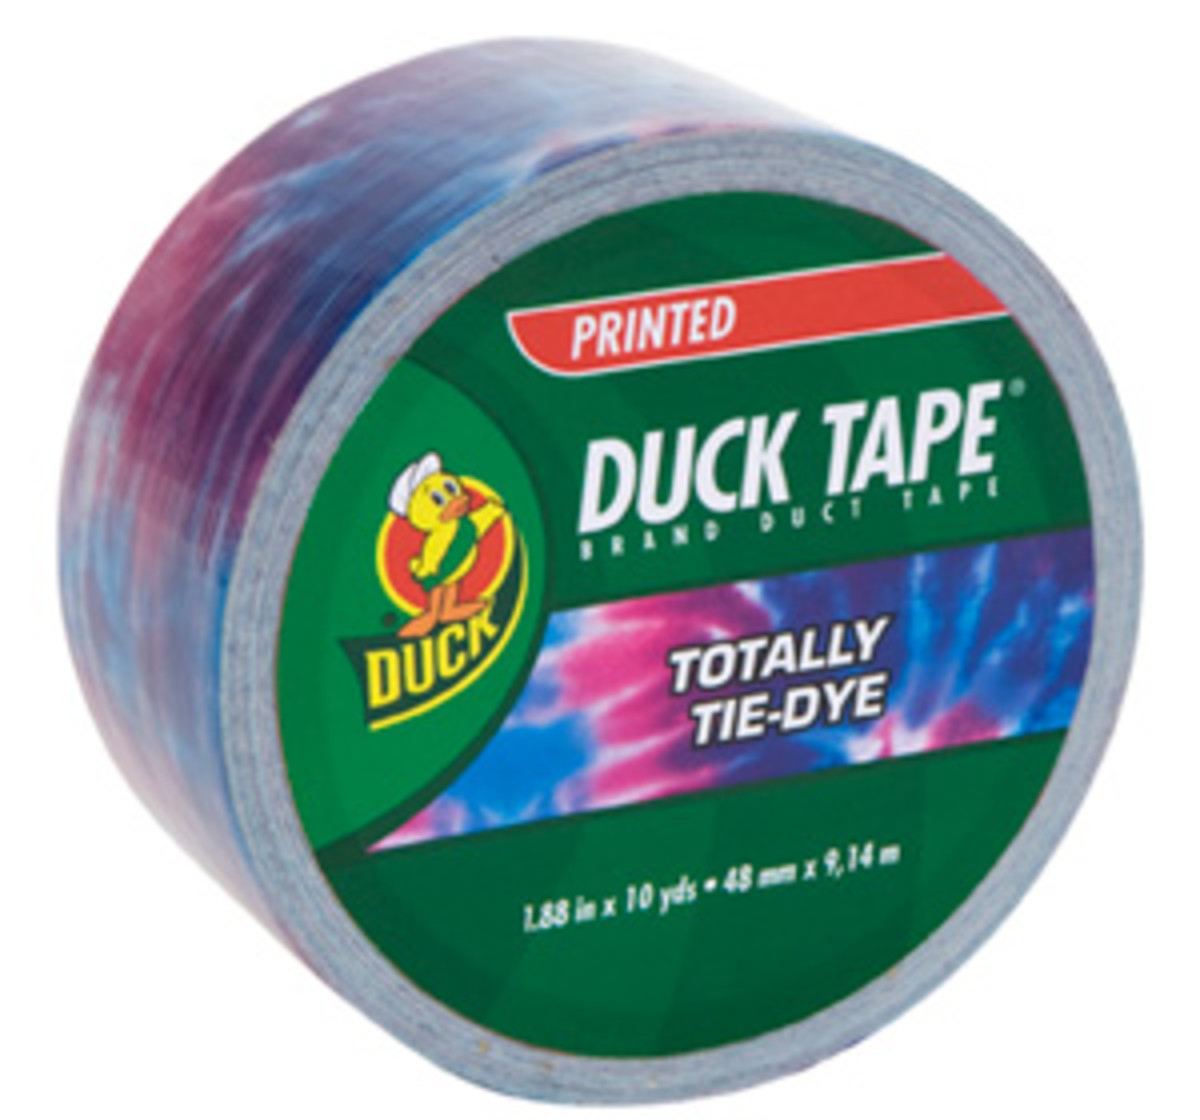 Totally Tie Dye Duck Tape(R) duct tape for crafters